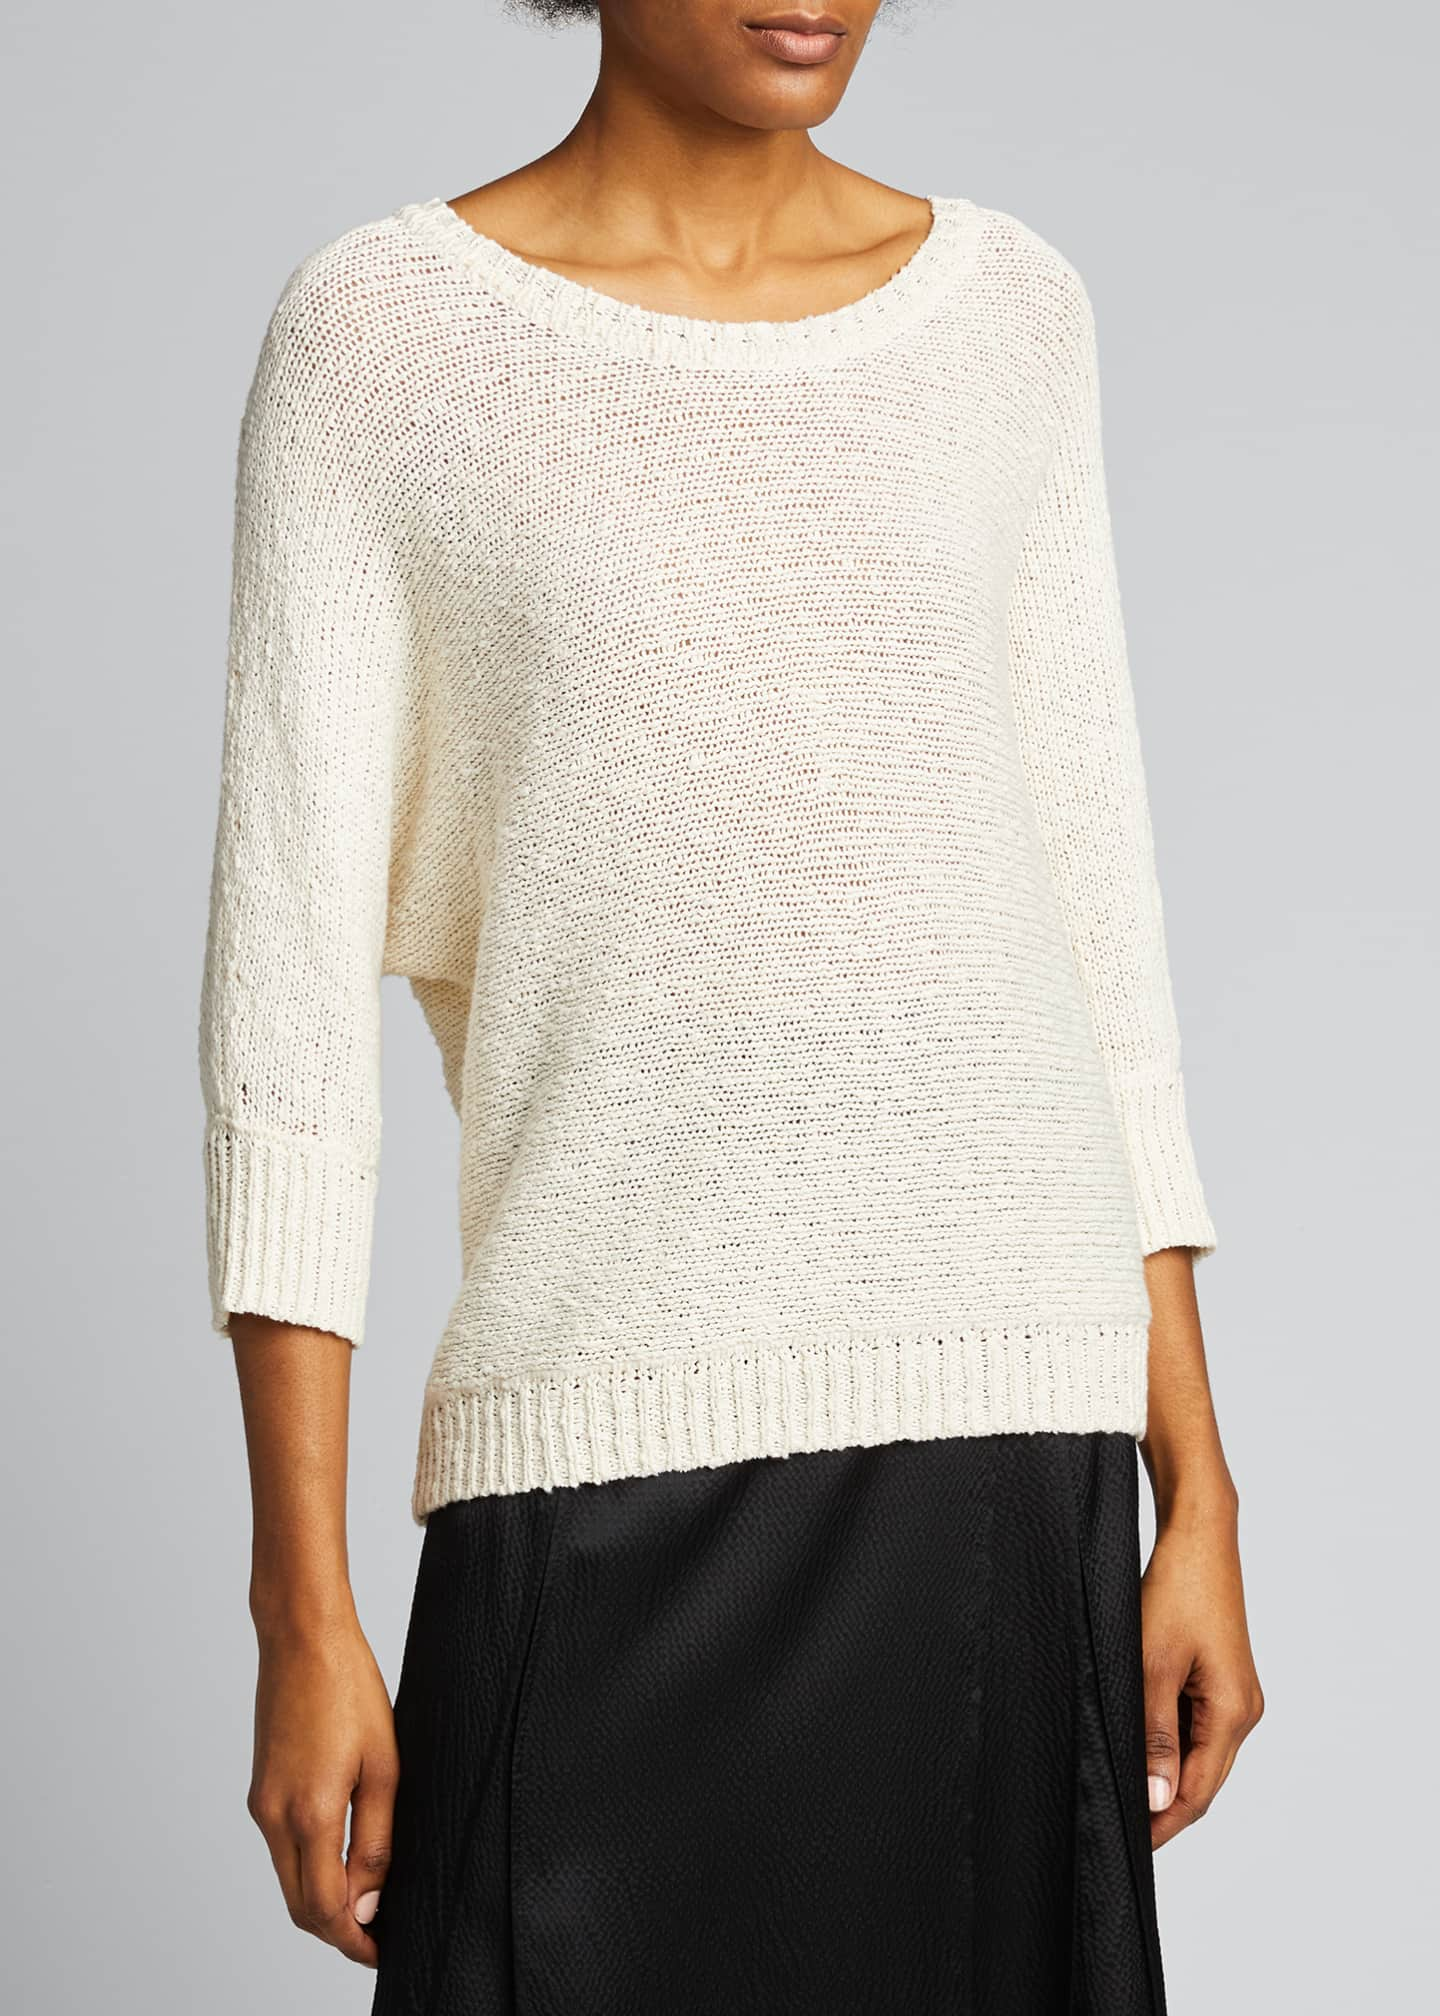 Image 3 of 5: Monroe Cotton/Hemp Sweater